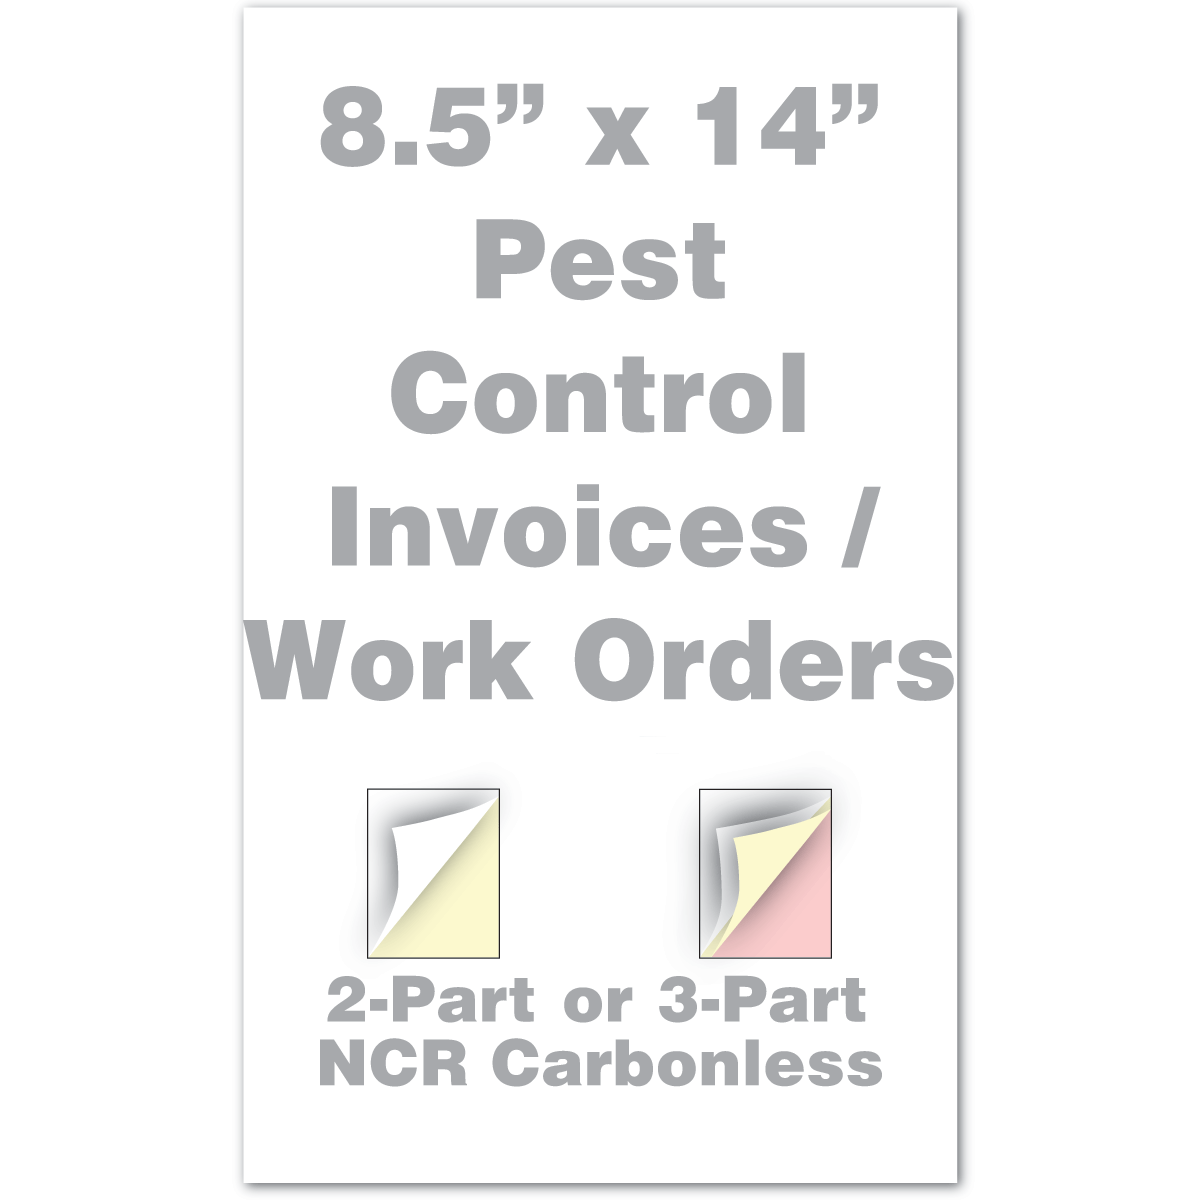 Legal Pest Control Invoice Work Order X Or Part - 2 part invoices